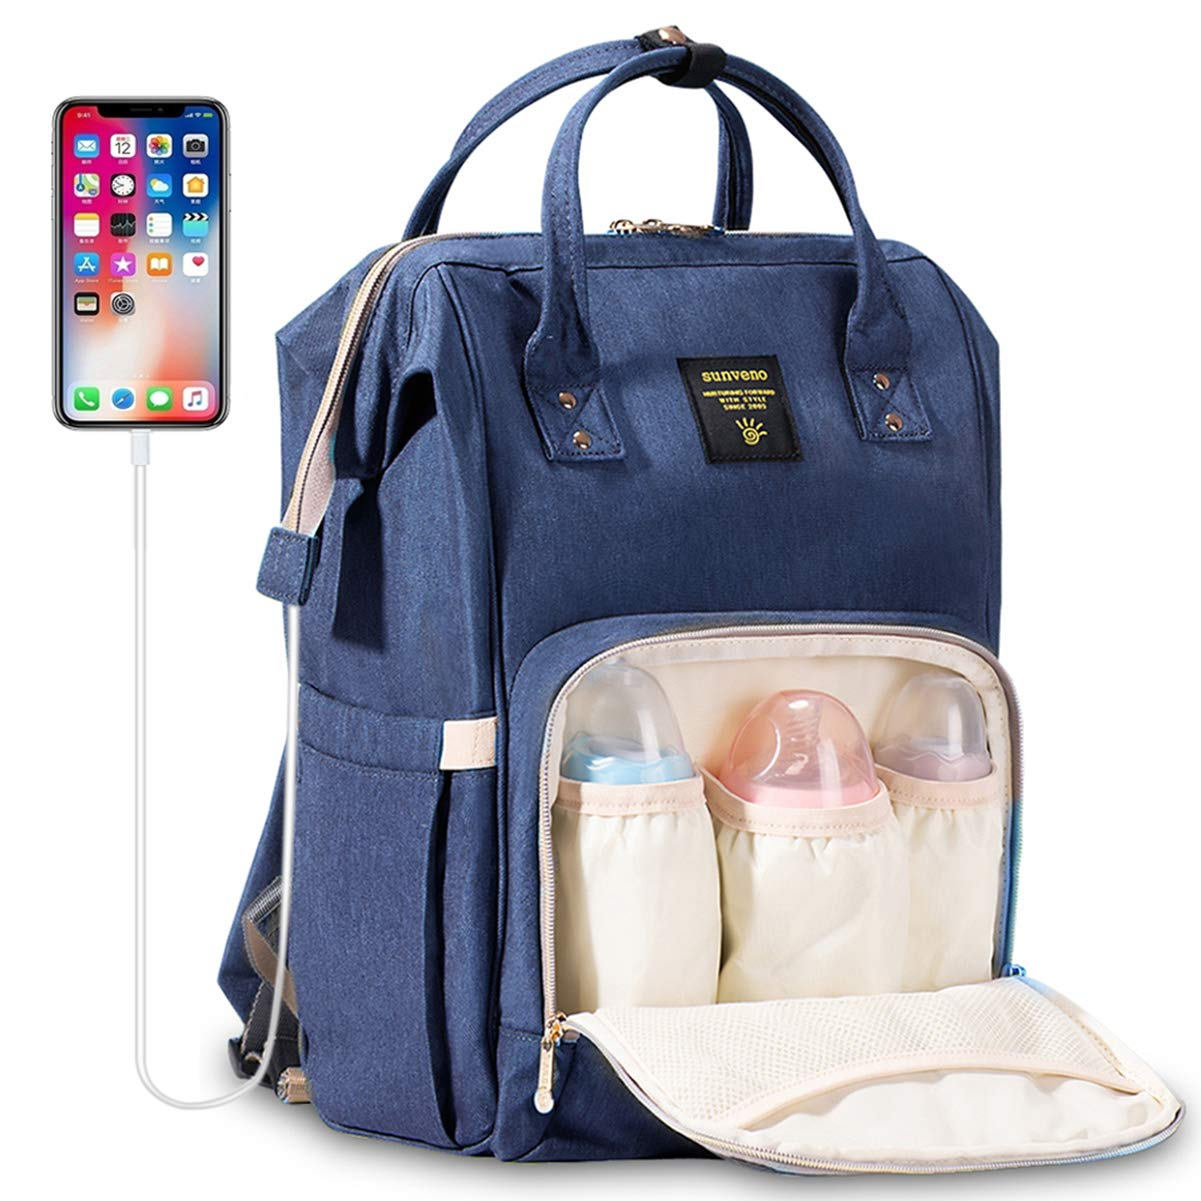 Diaper Bag Backpack SUNVENO Multi-Function Waterproof Travel Backpack Nappy Bags for Baby Care, Large Capacity